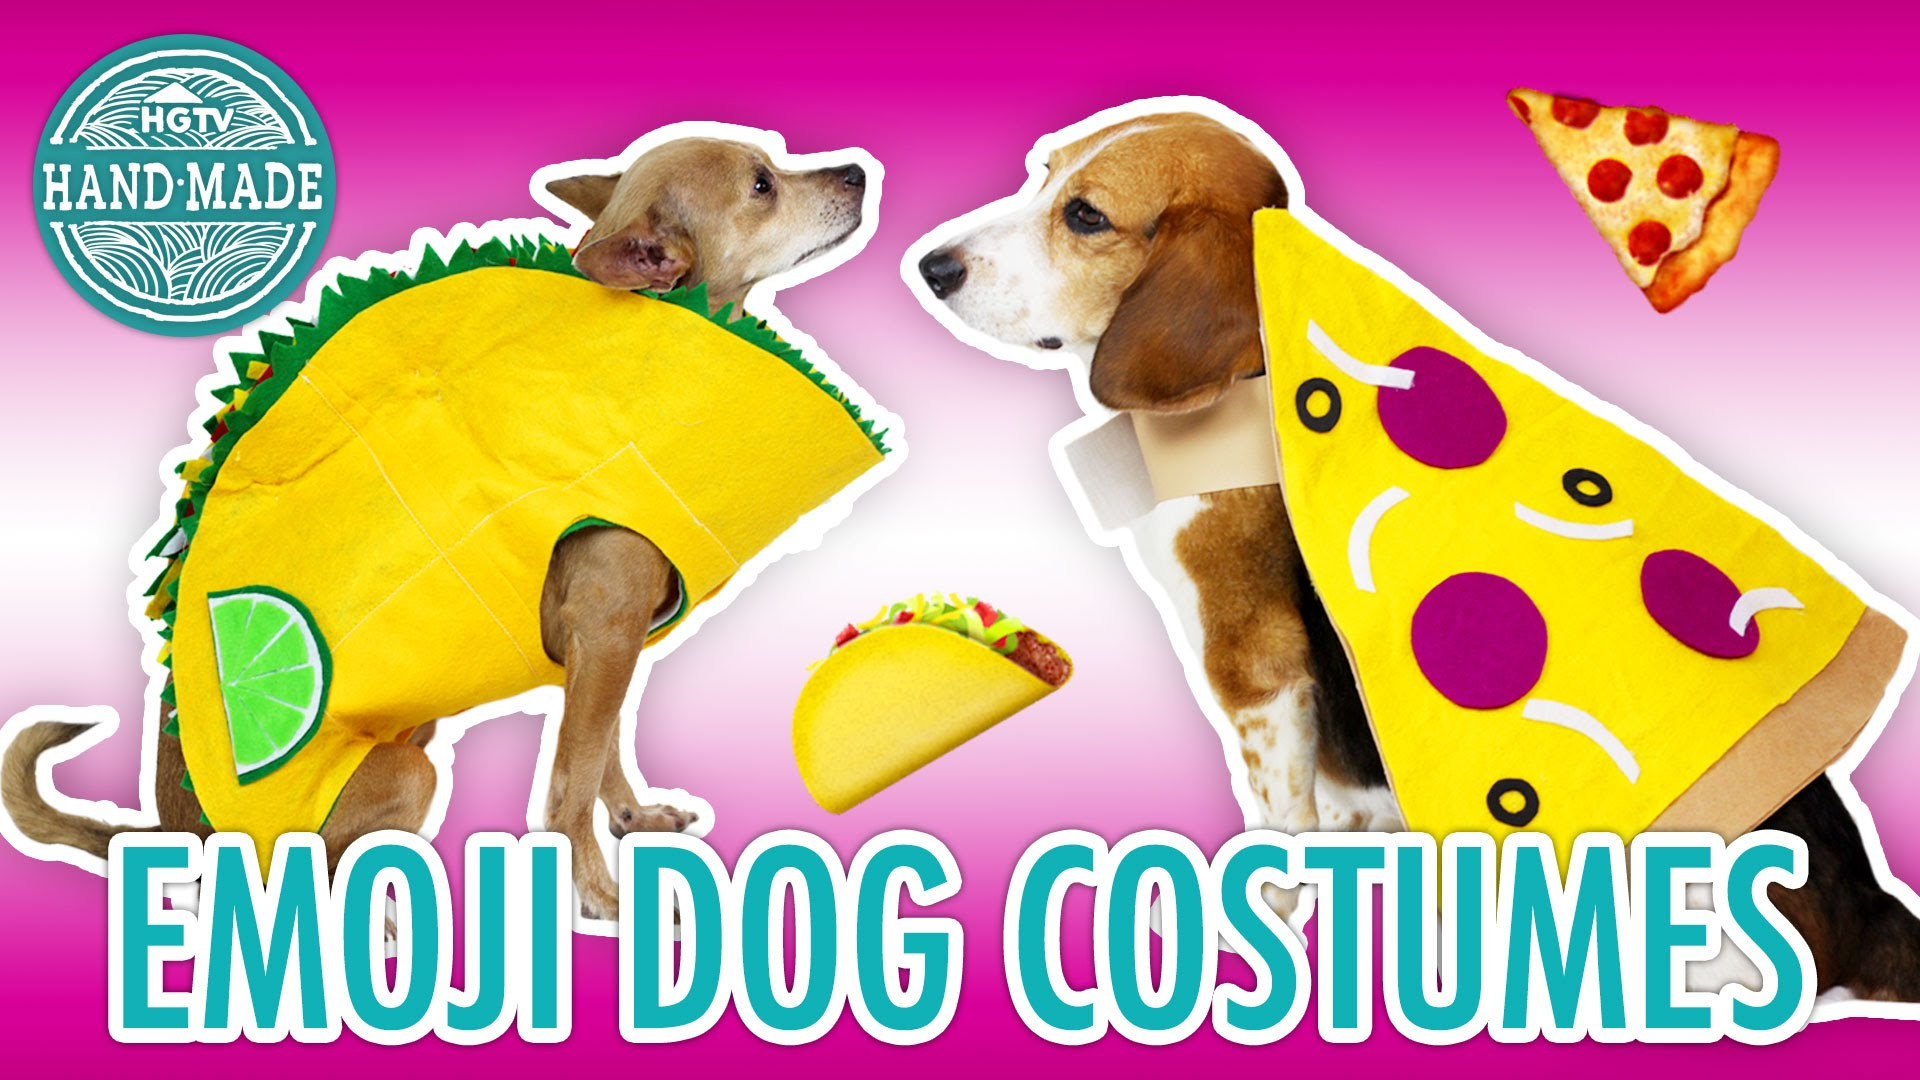 Last Minute DIY Emoji Dog Costumes - HGTV Handmade